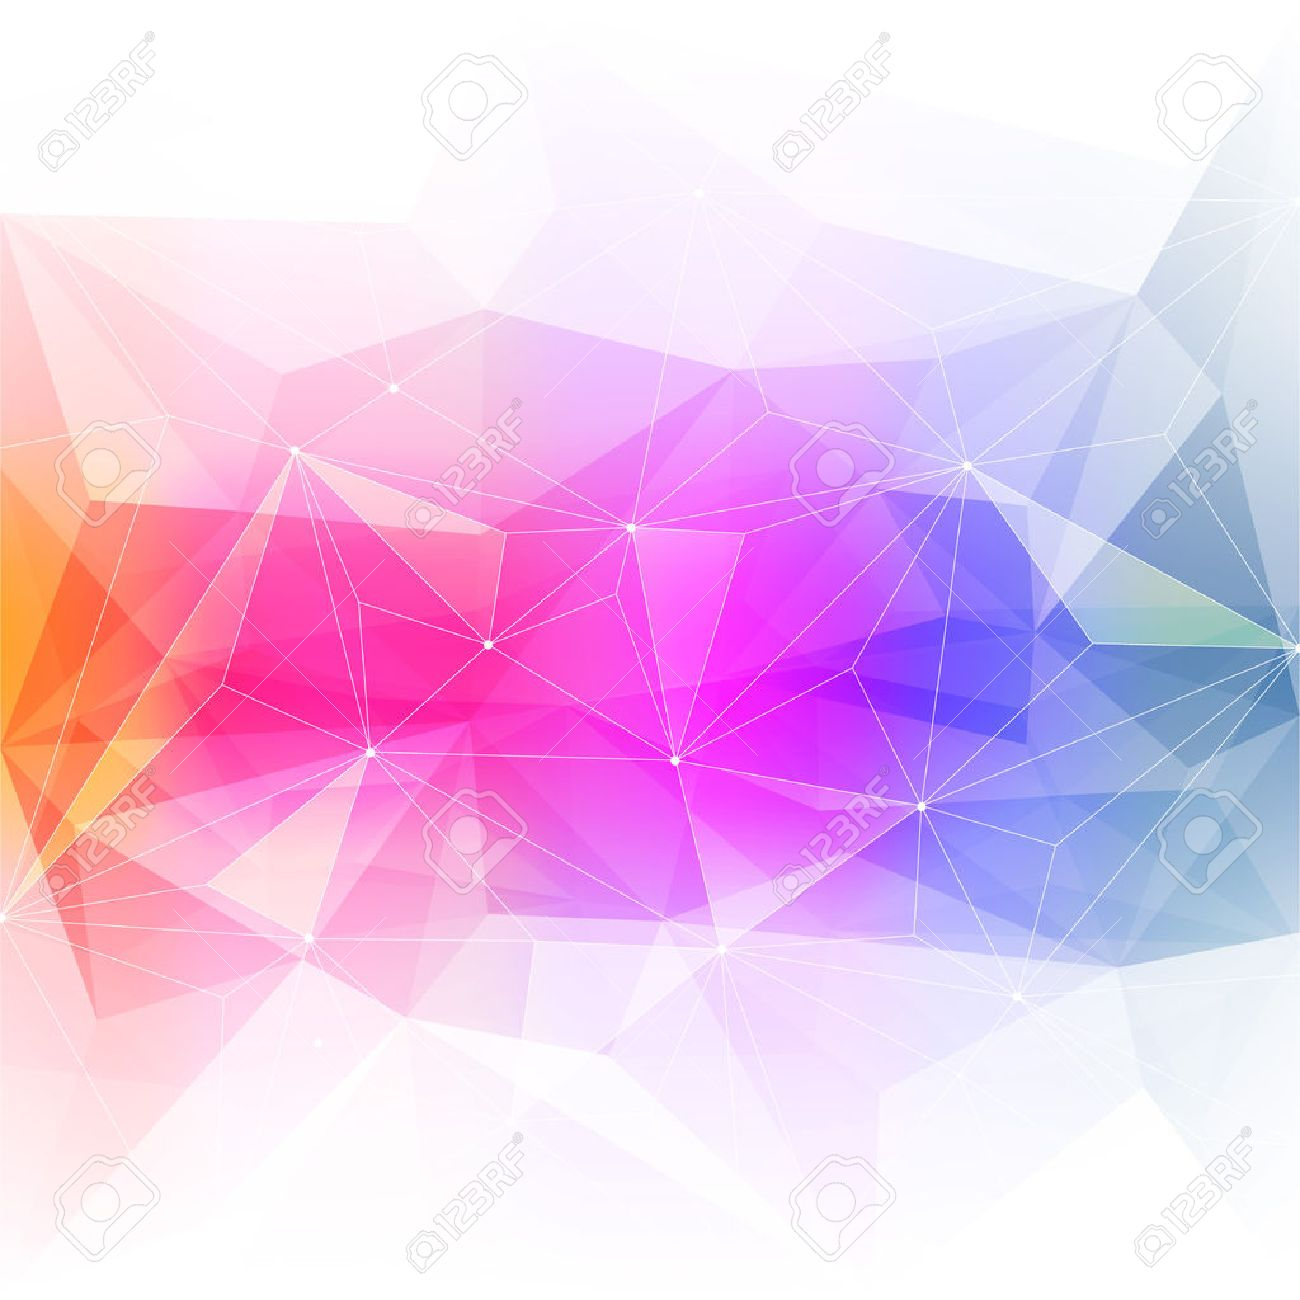 Colorful abstract crystal background. Ice or jewel structure. Pink, Yellow and green bright colors. - 36617398